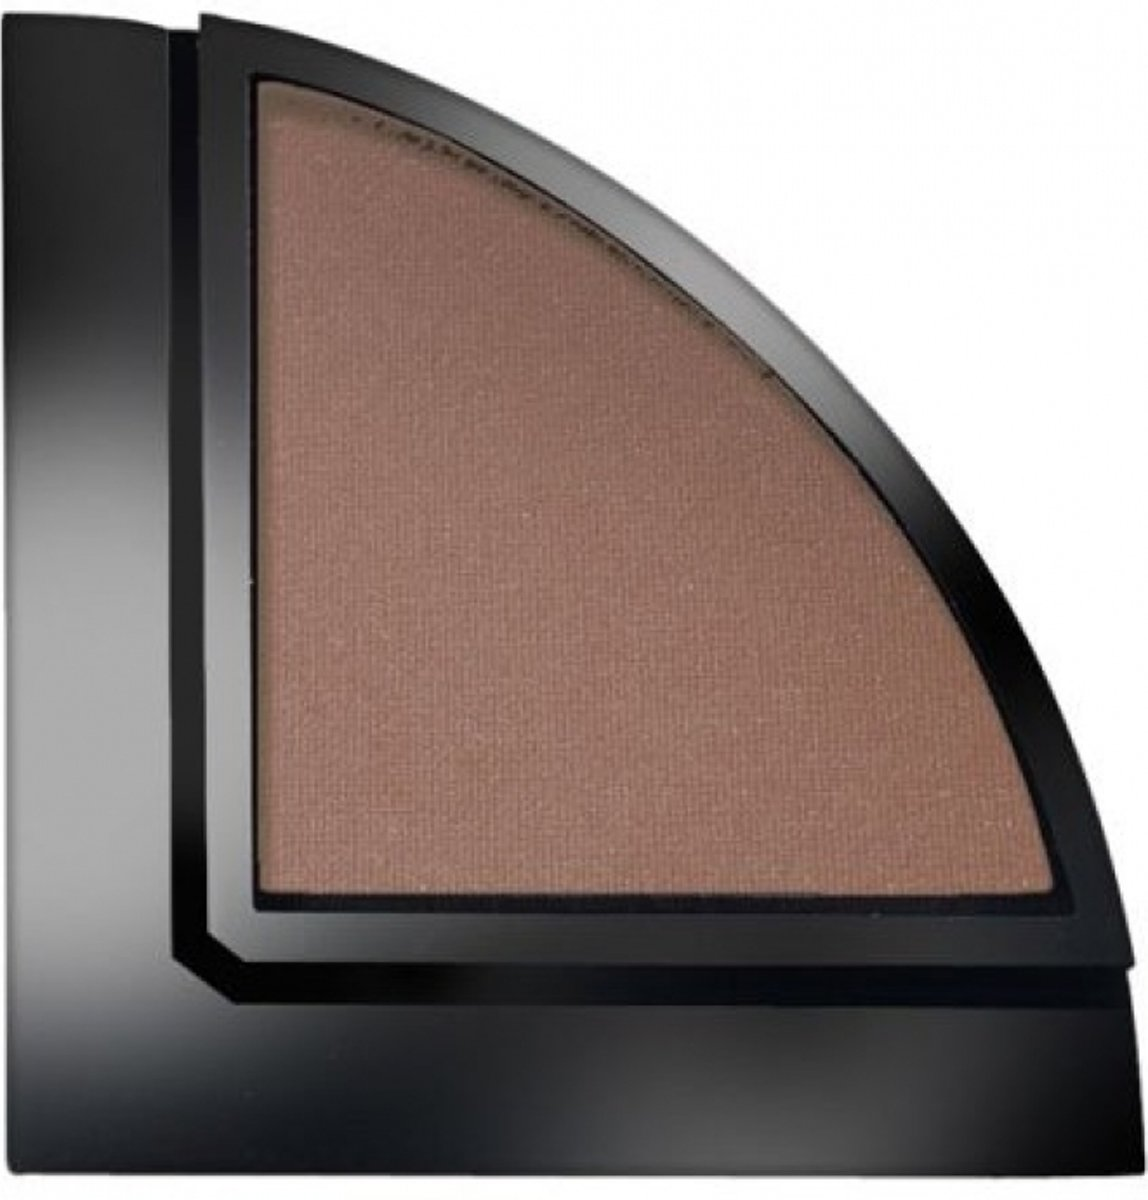 Sans Soucis Eyeshadow Re-fill Oogschaduw 1 st - 31 - Safari Brown